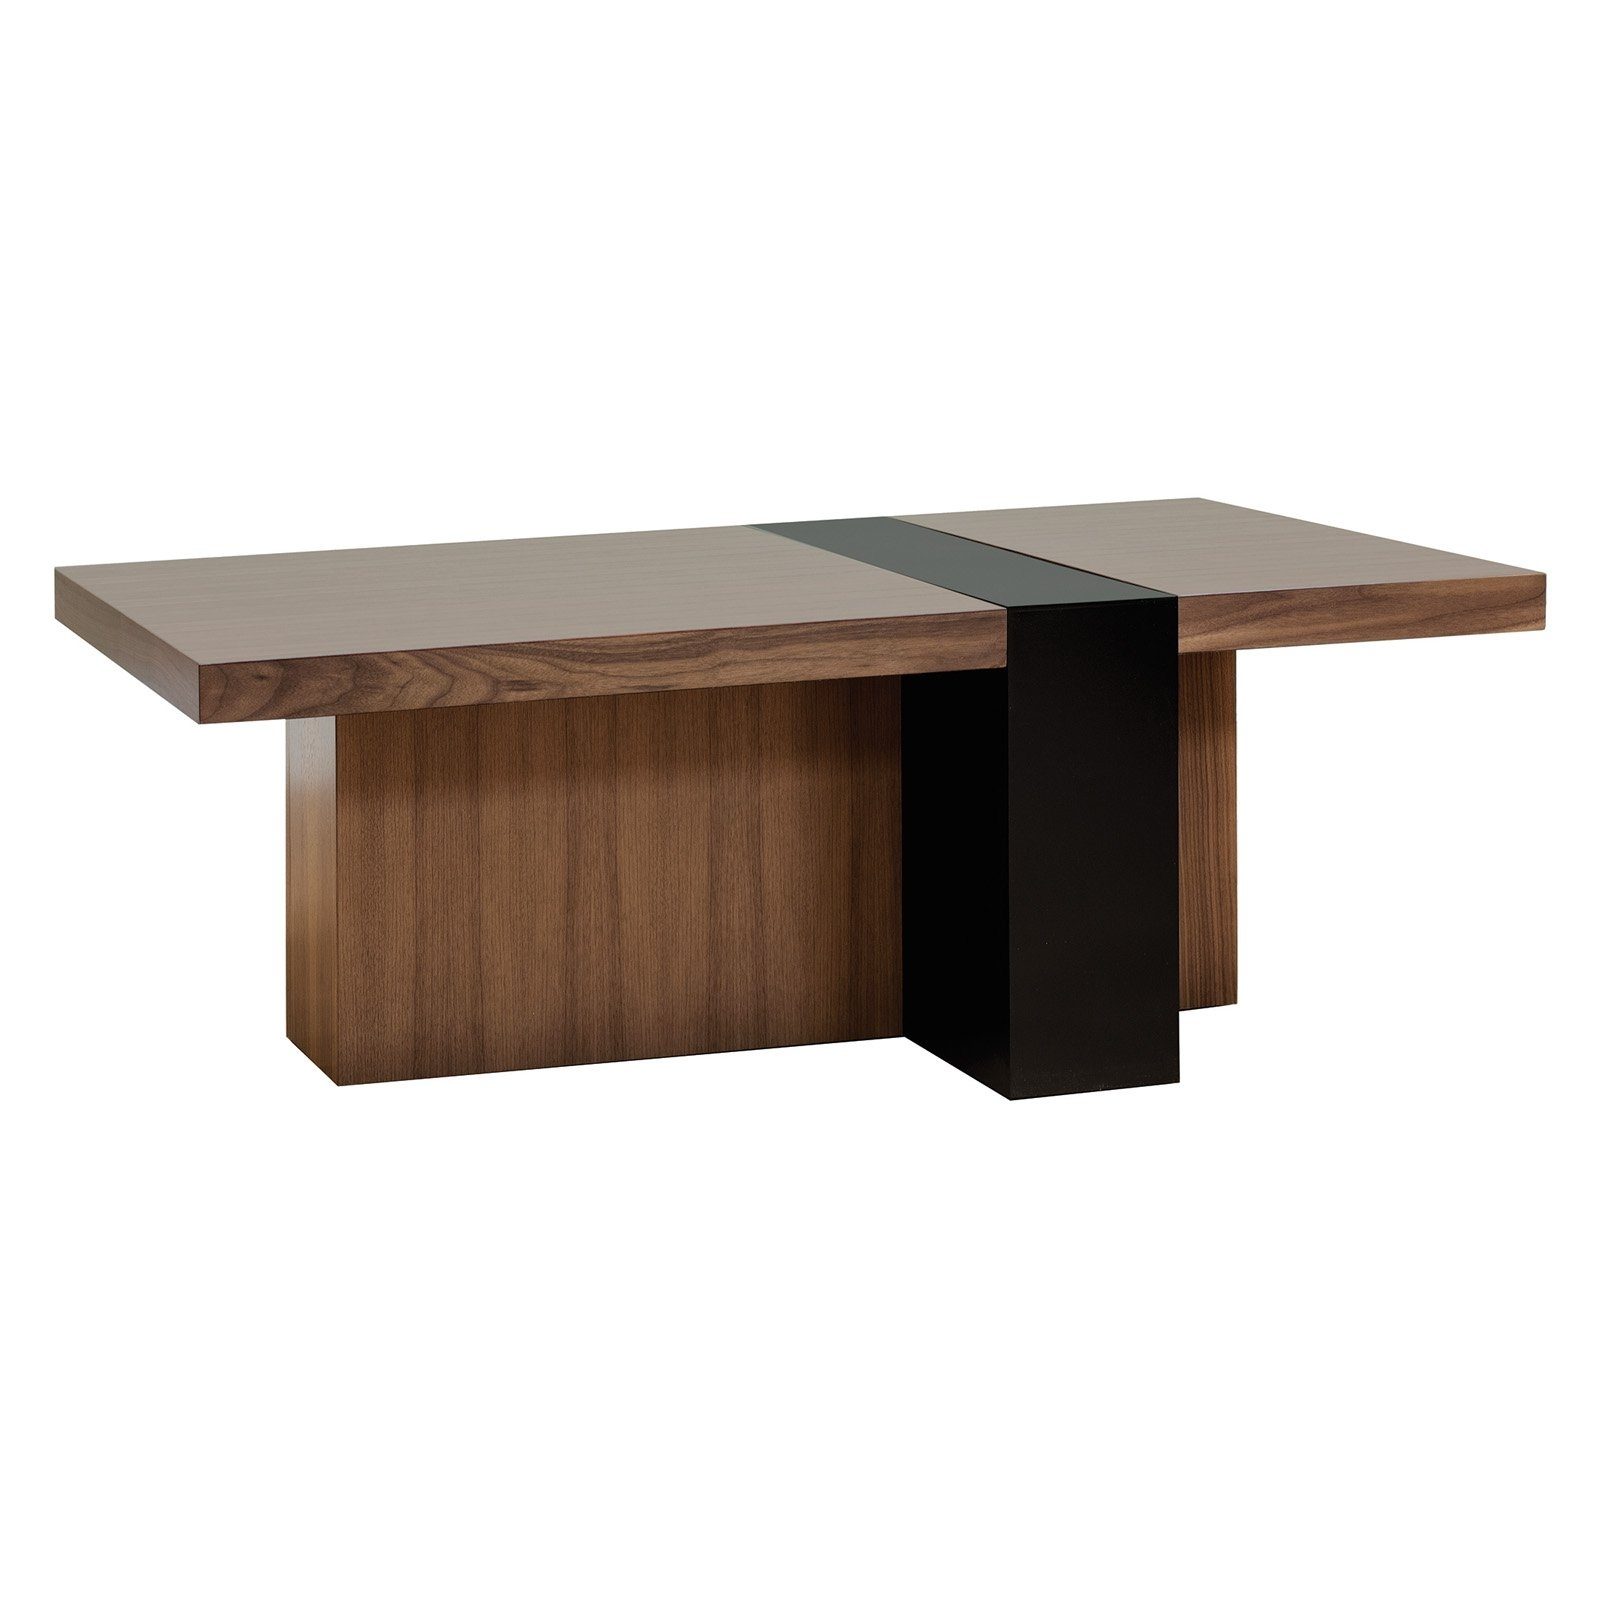 Most Popular Stratus Cocktail Tables Throughout Martin Furniture Stratus Coffee Table – Walmart (View 10 of 20)